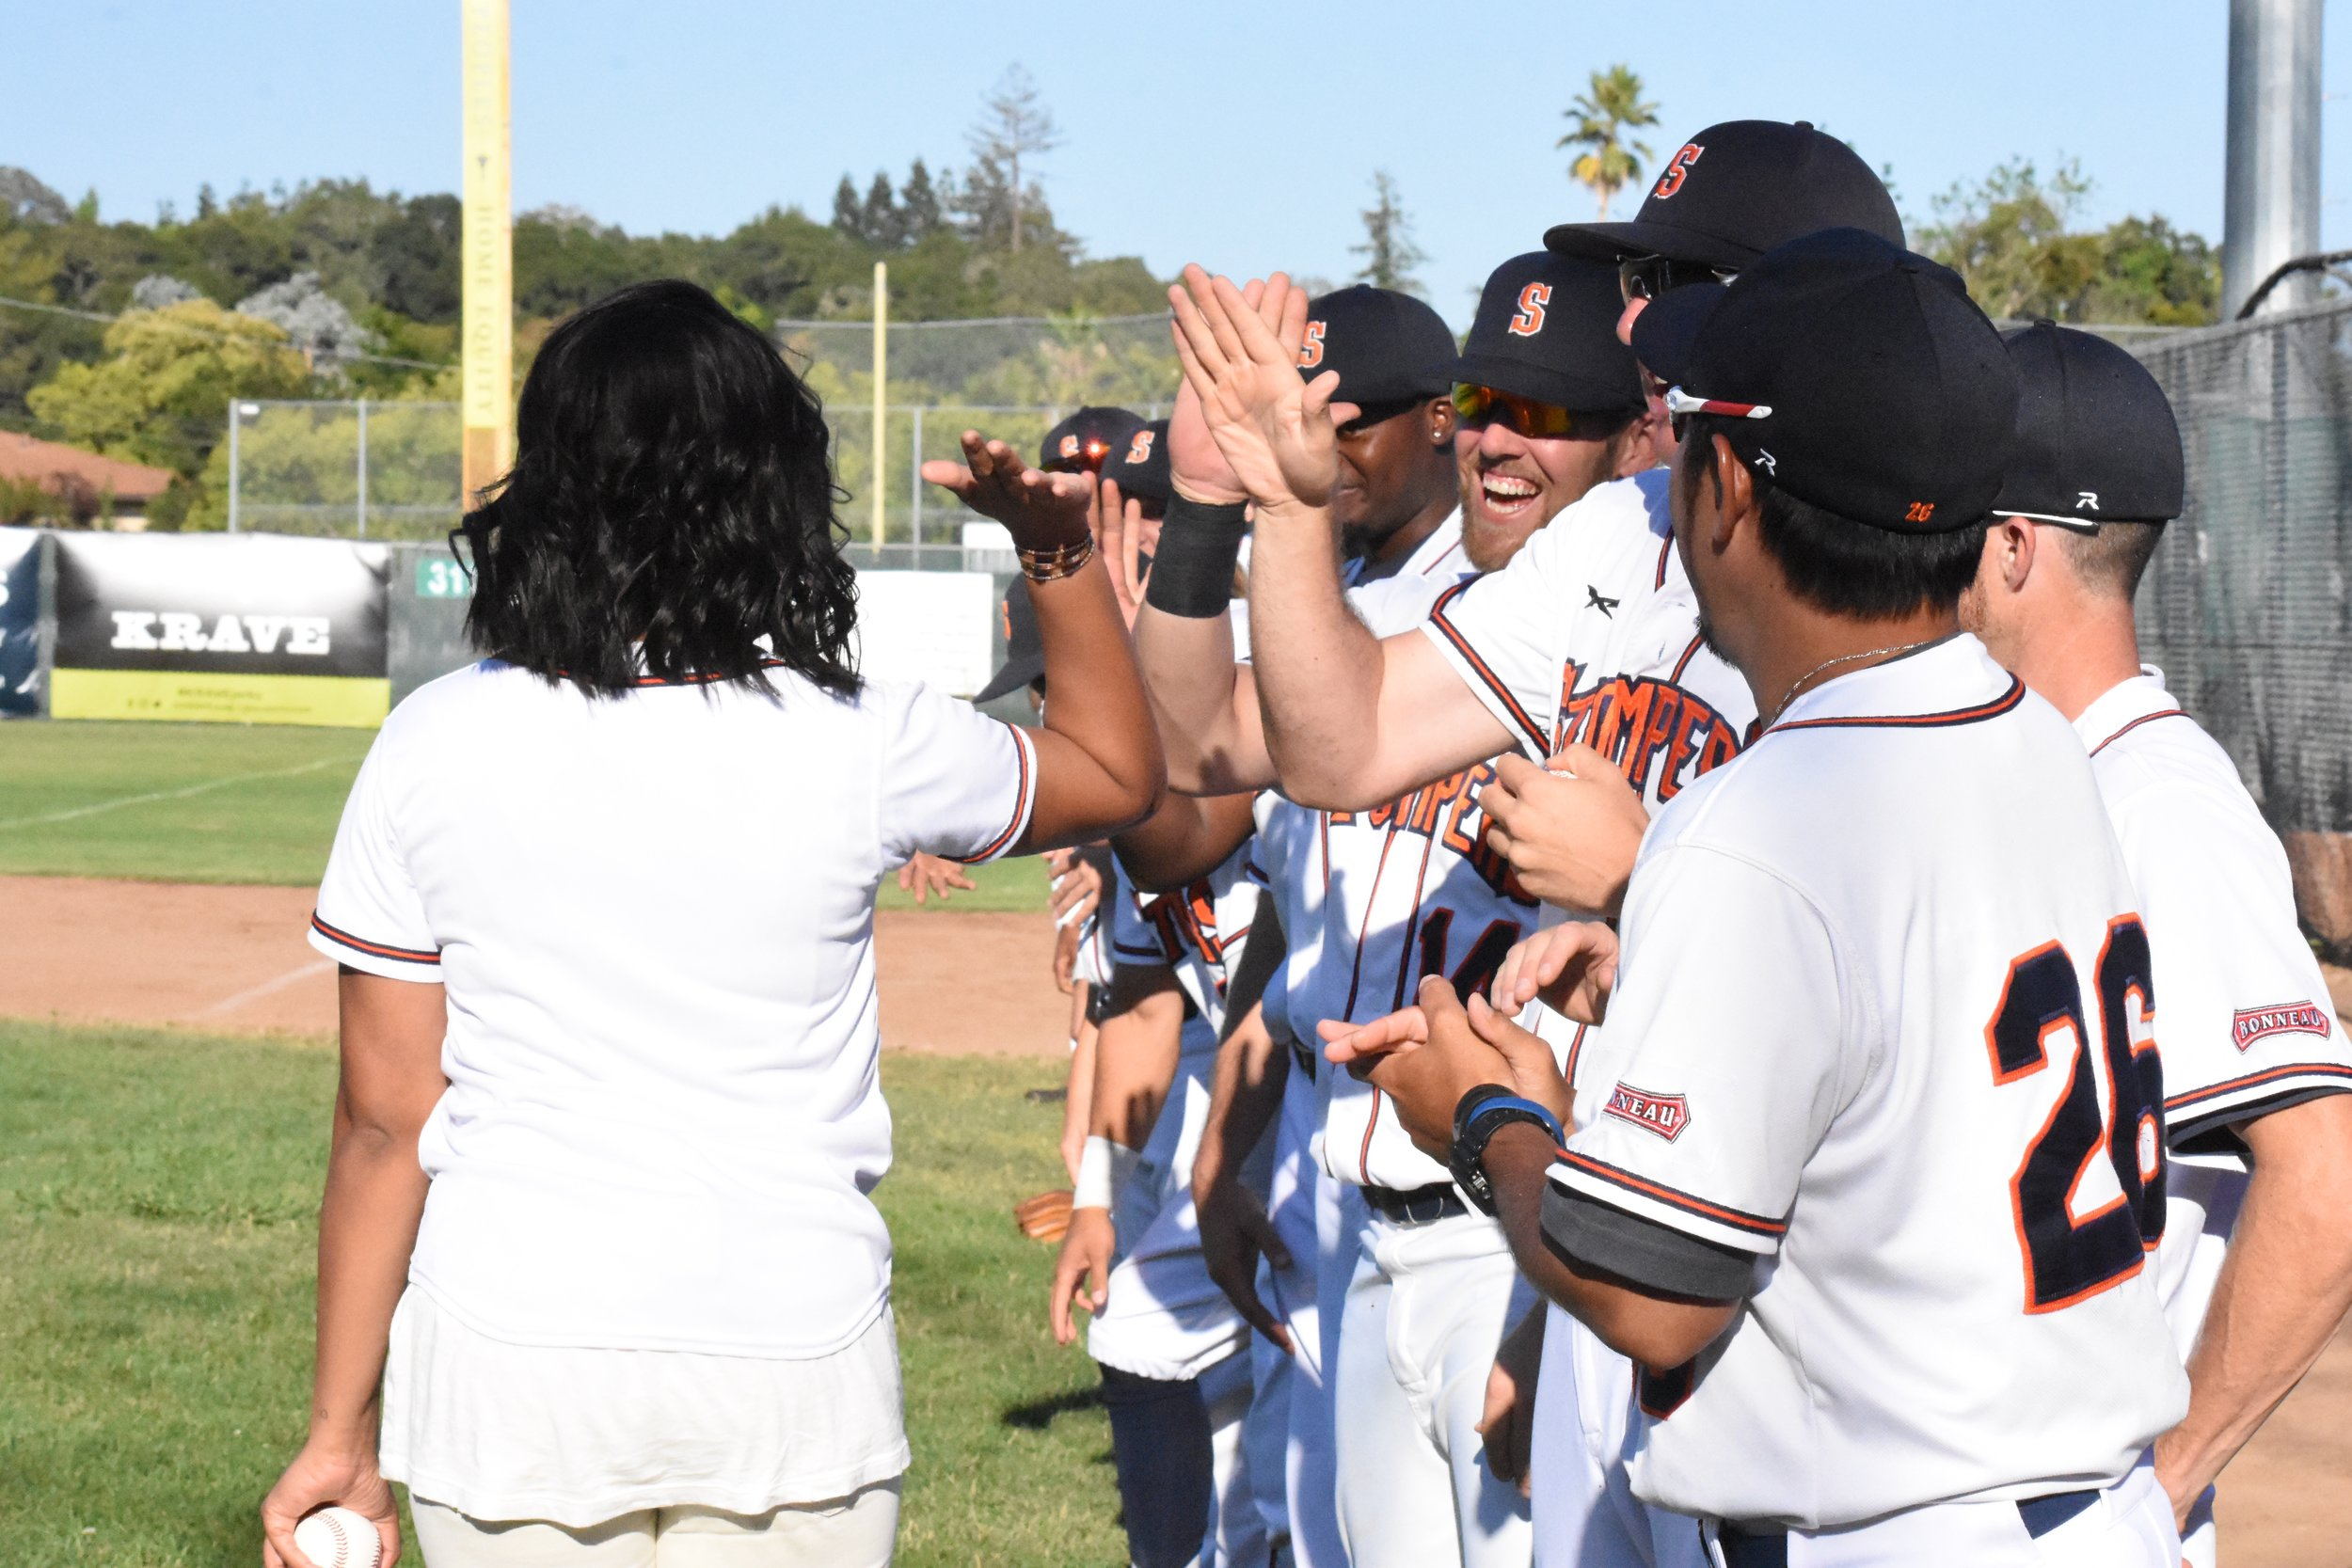 Author and professional chef Ayesha Curry (left) high fives the Sonoma Stompers after throwing the first pitch at Peoples Home Equity Ballpark at Arnold Field. (James W. Toy III / Sonoma Stompers)